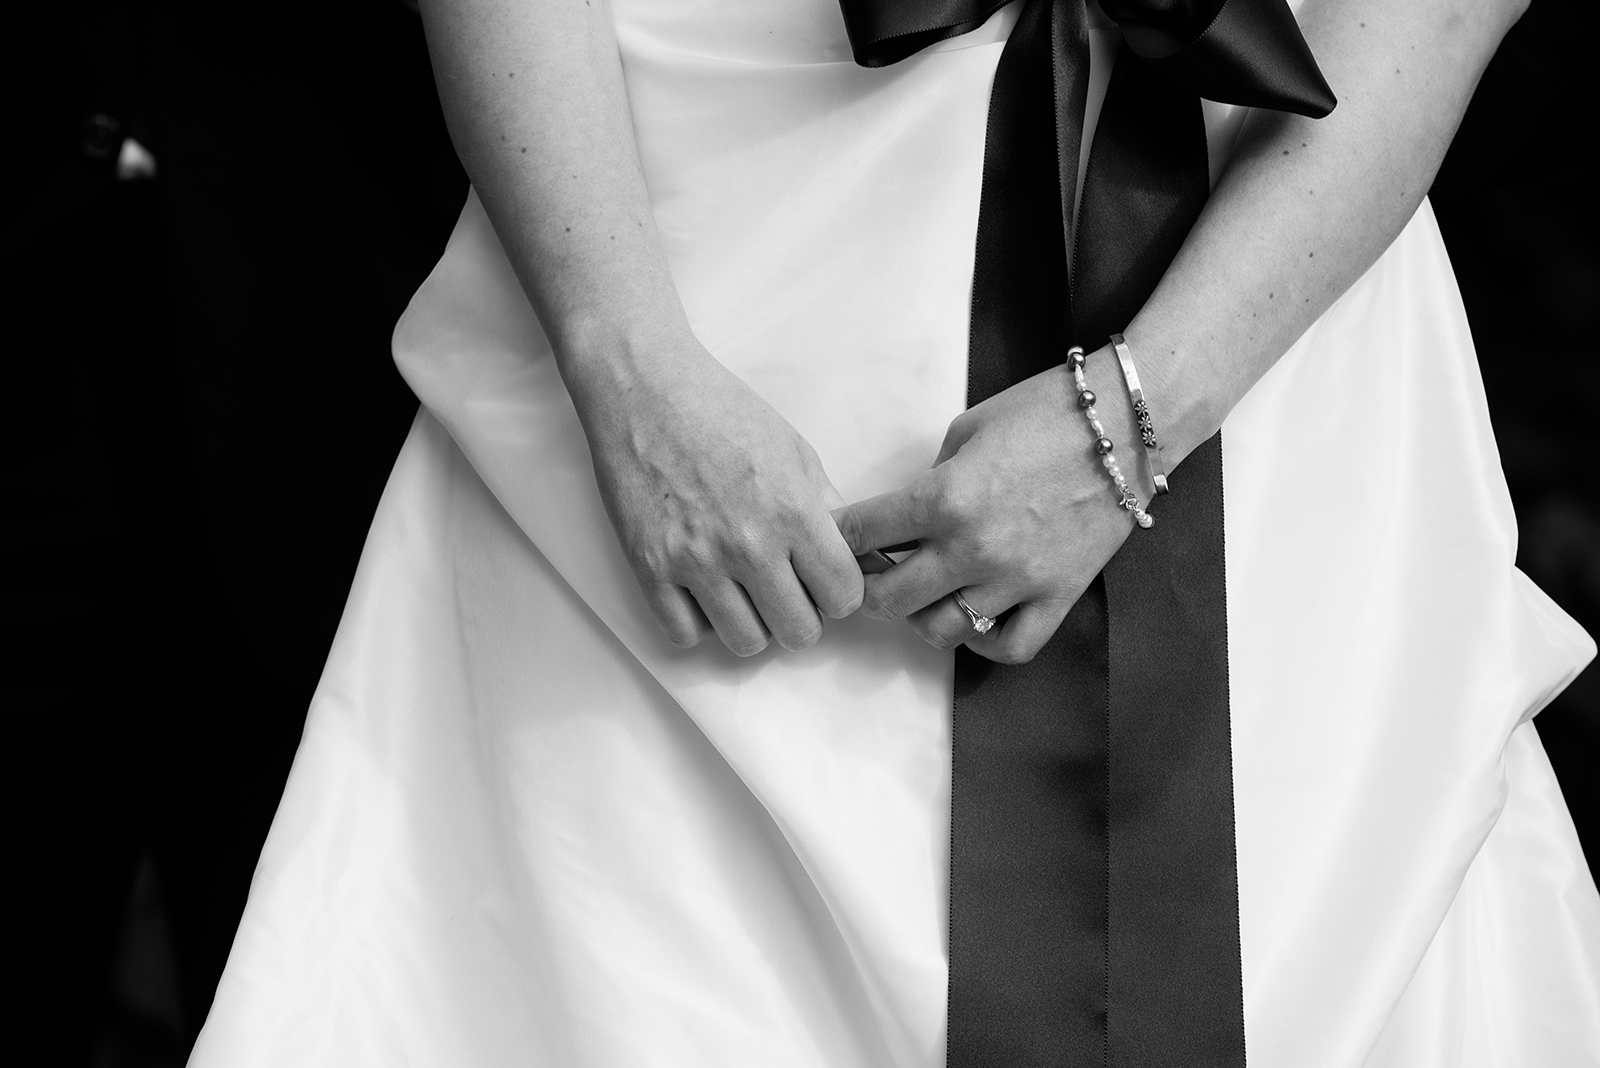 Artistic Black and White Bride Hands